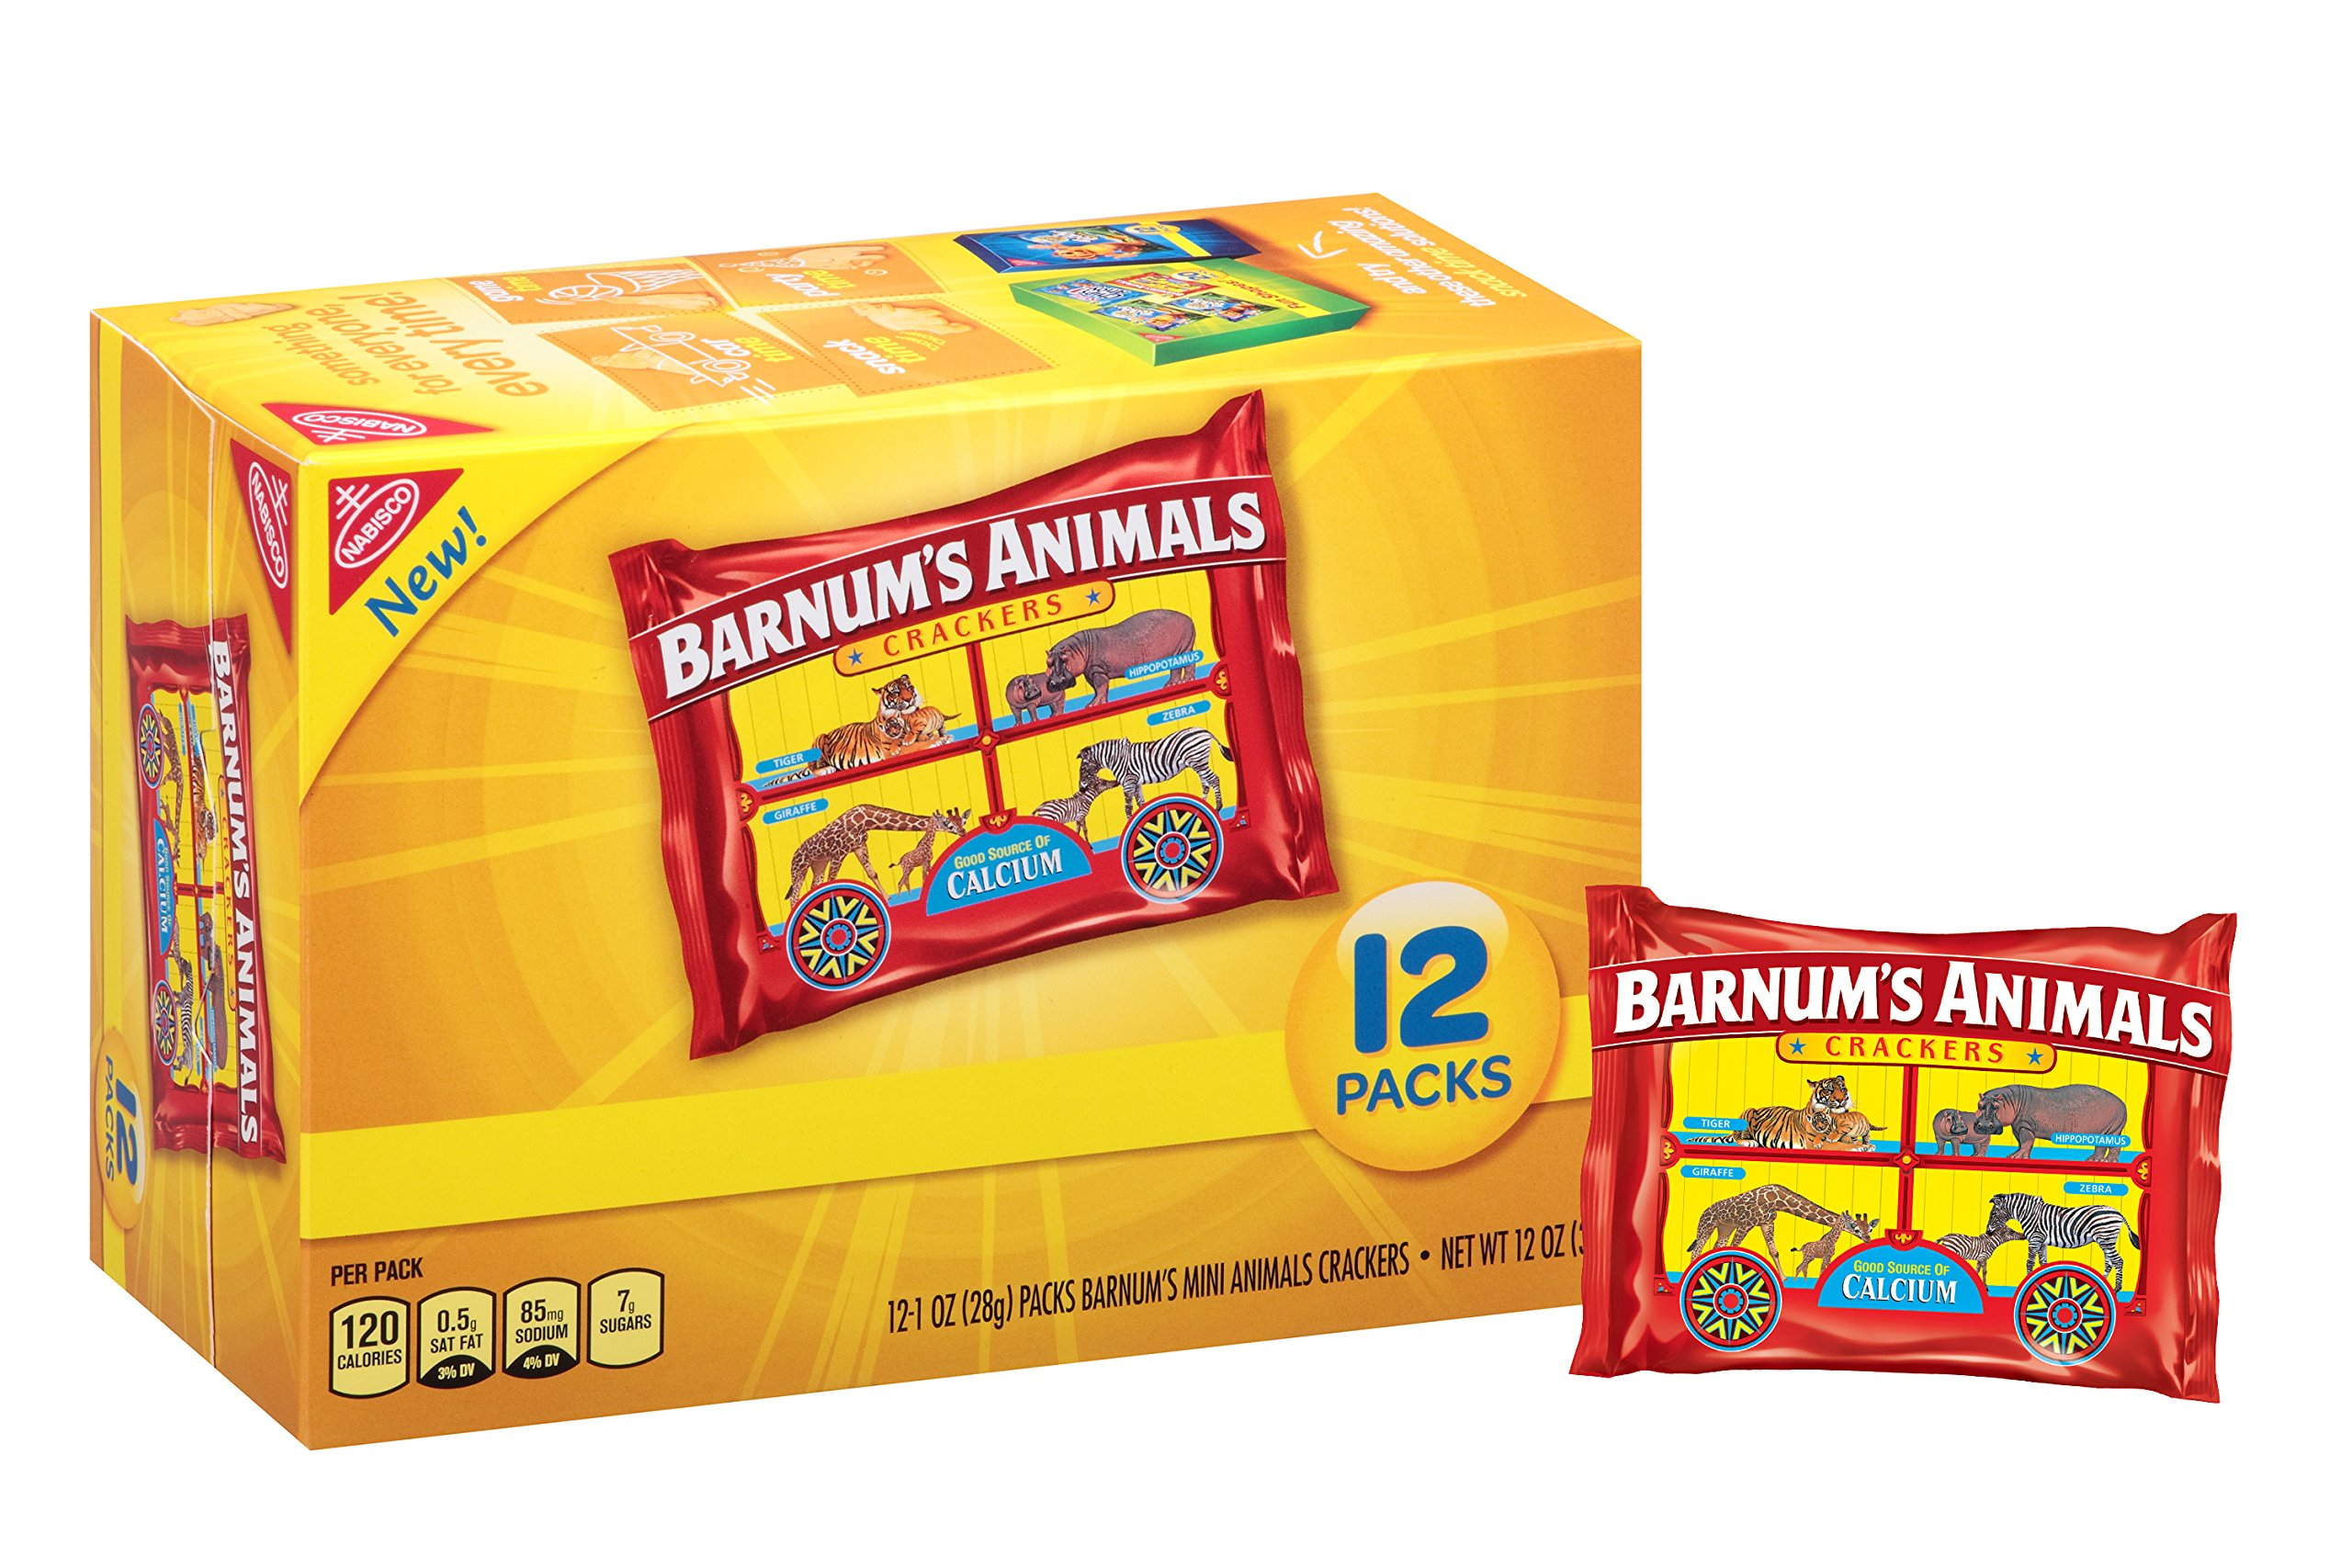 Barnum's Animals 12 Count Mini Animal Crackers Snack Packs, Original, 12.0 Ounce (Pack of 4) by Barnum's Animals